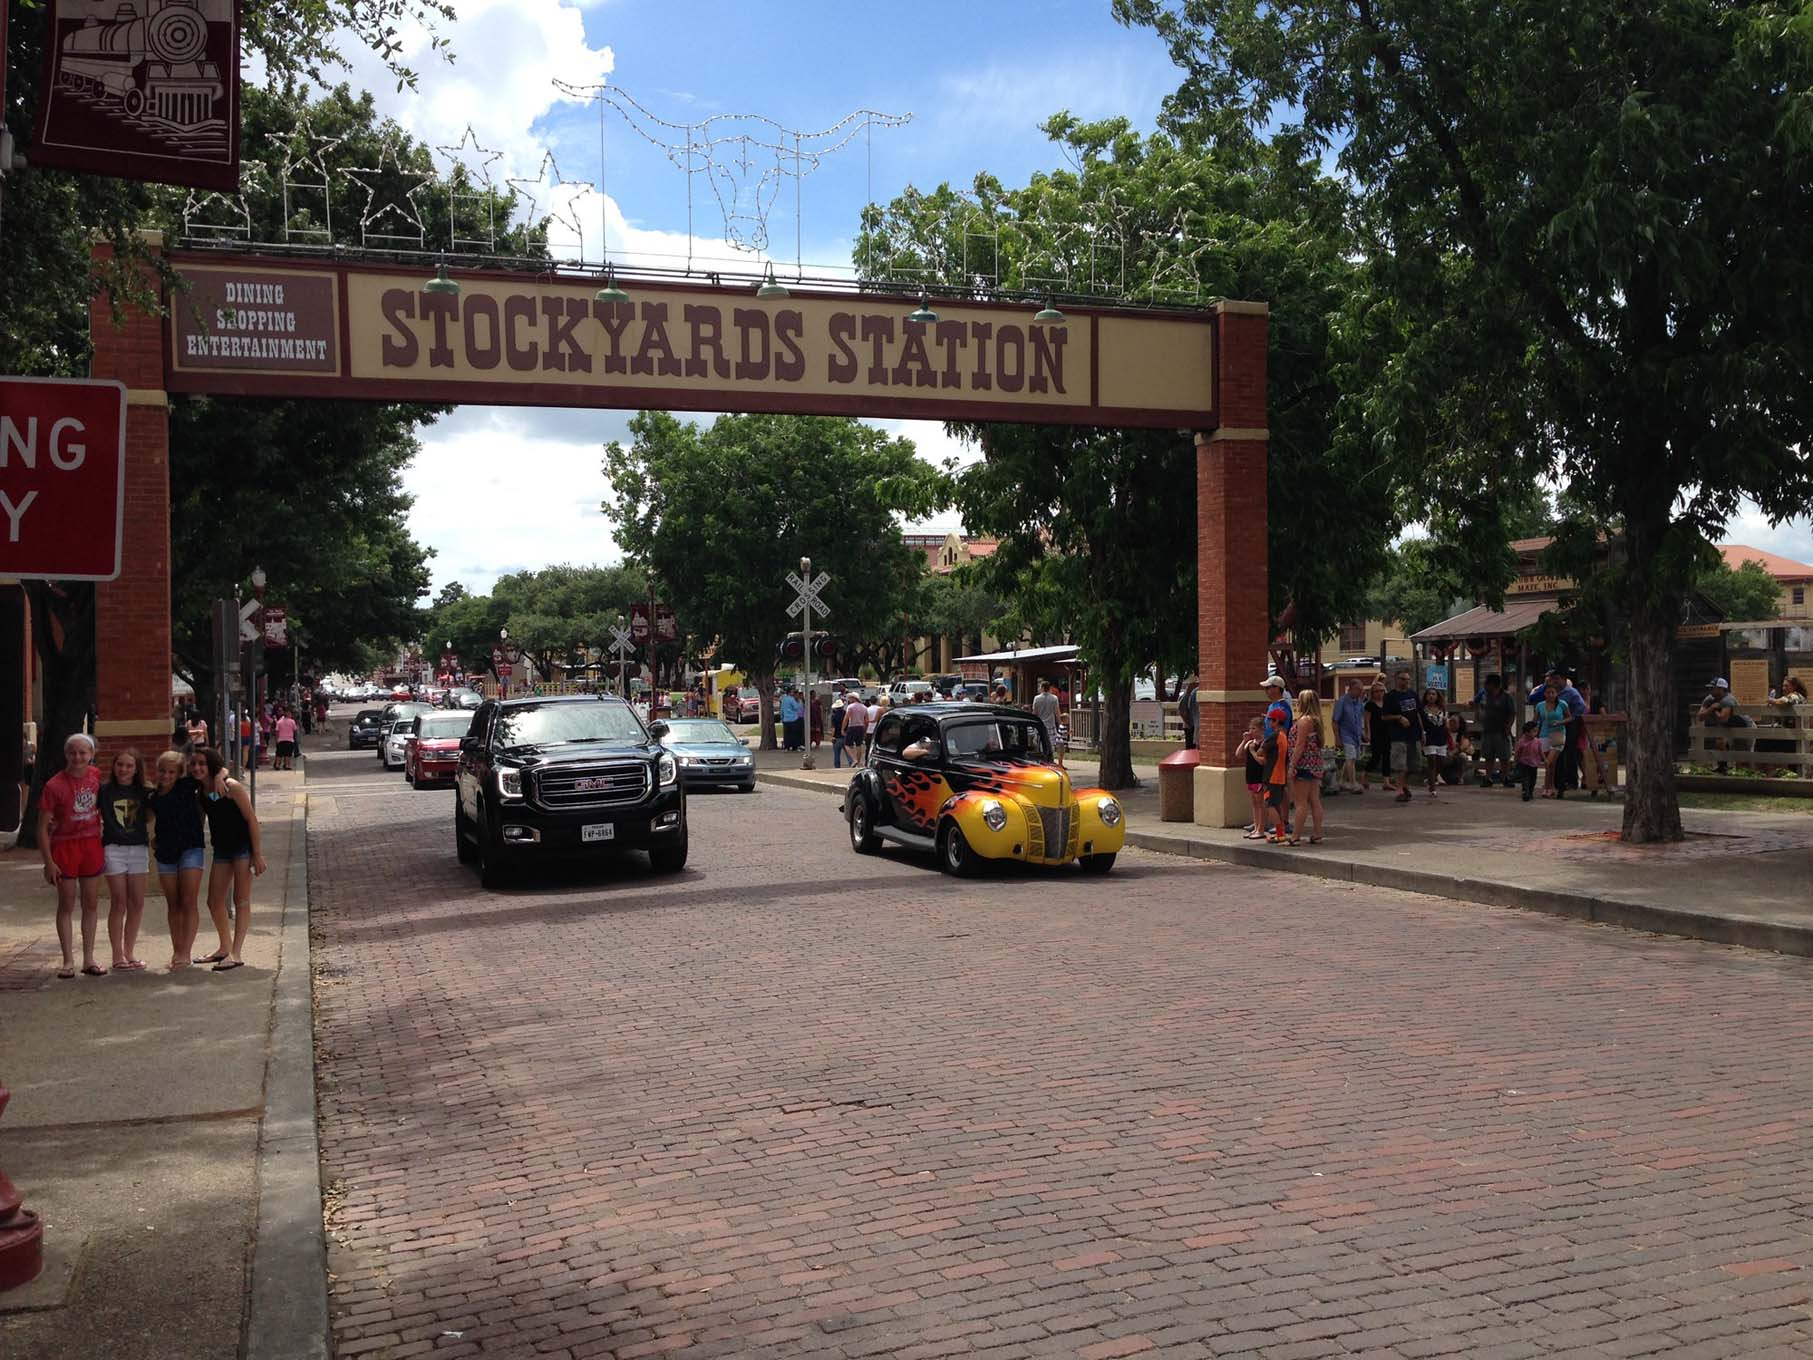 We visited the Fort Worth Stockyards on Sunday. The cattle drives in this area have been replaced by restaurants and shops. We brought some different horse power the afternoon we stopped.